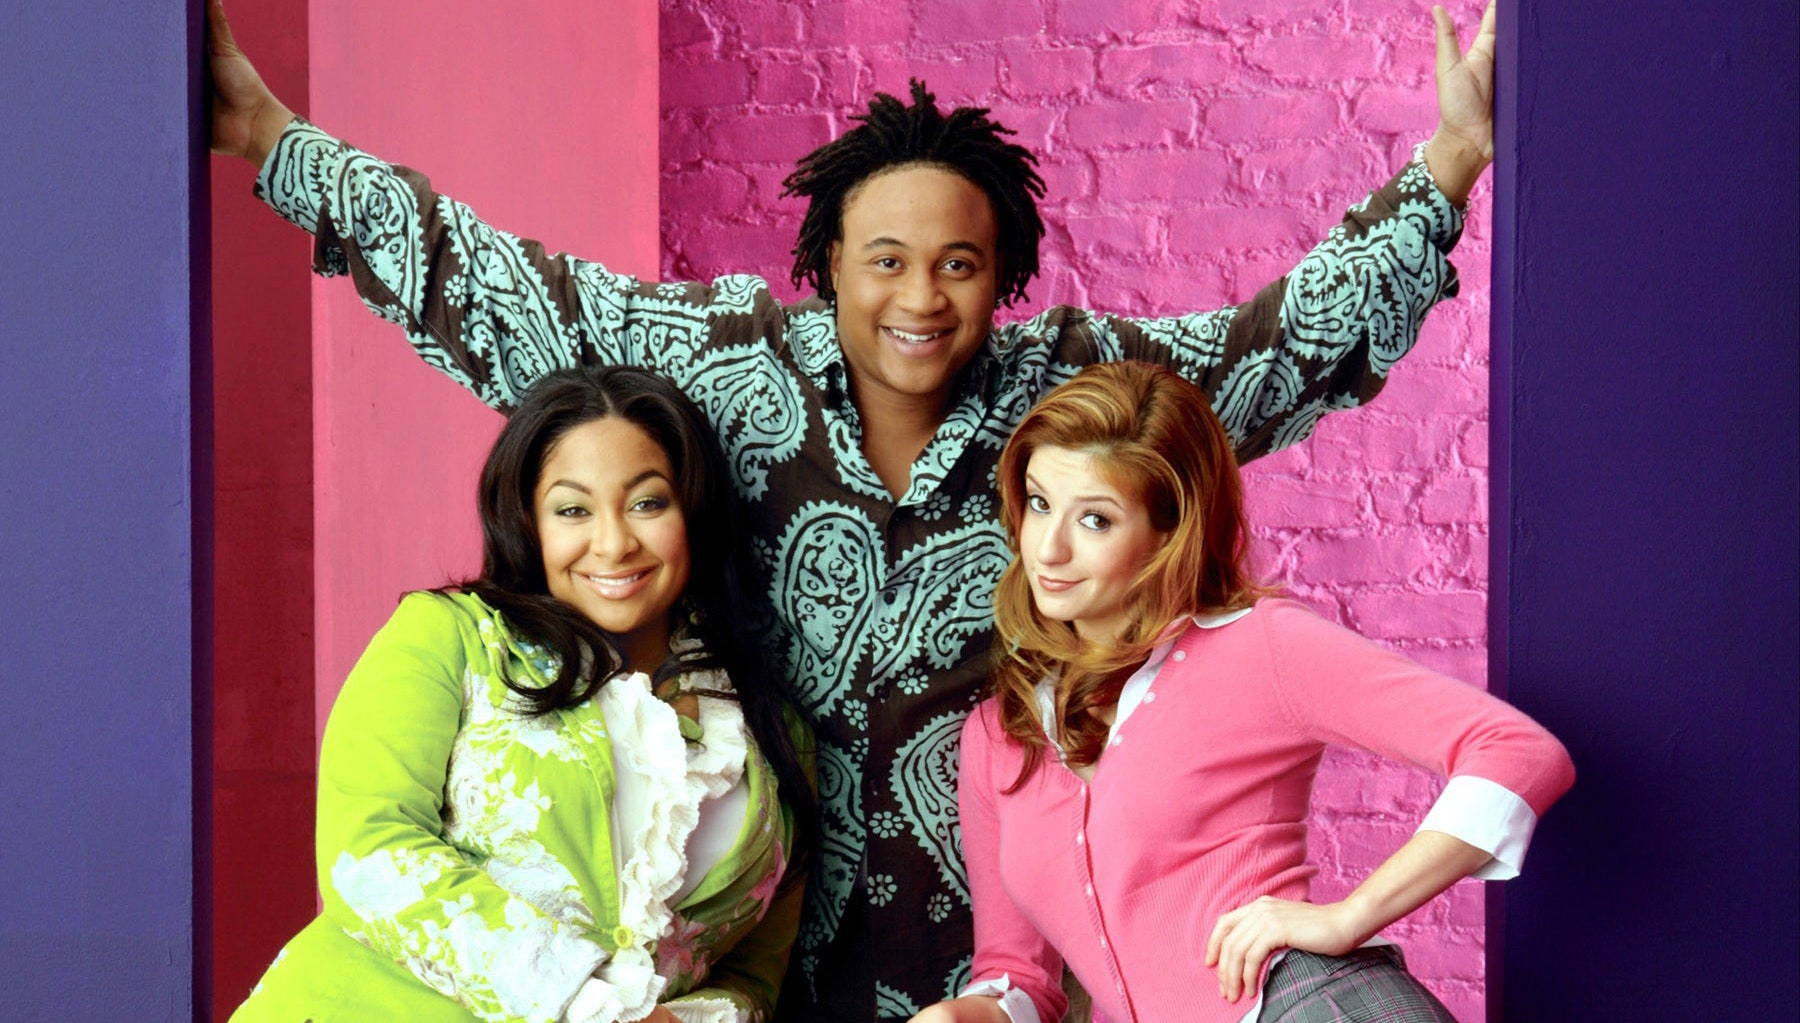 It's the future that I can see  That's so raven!  It is...